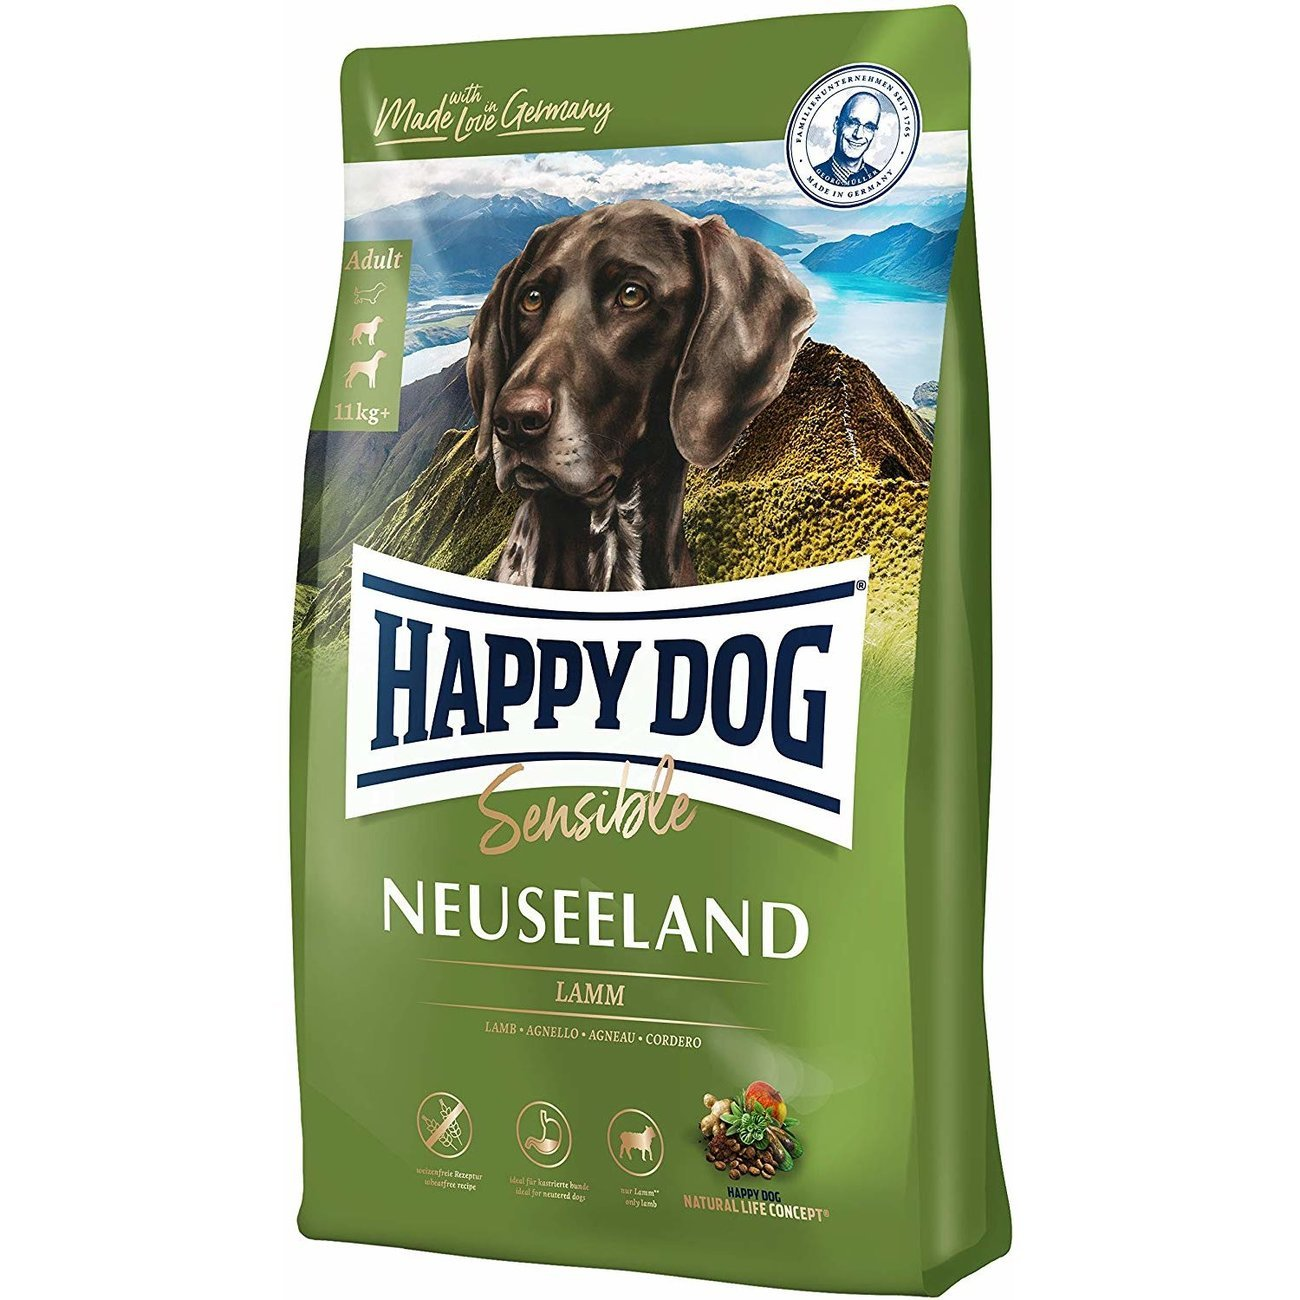 Happy Dog Supreme Neuseeland Lamm Reis, 12.5 kg